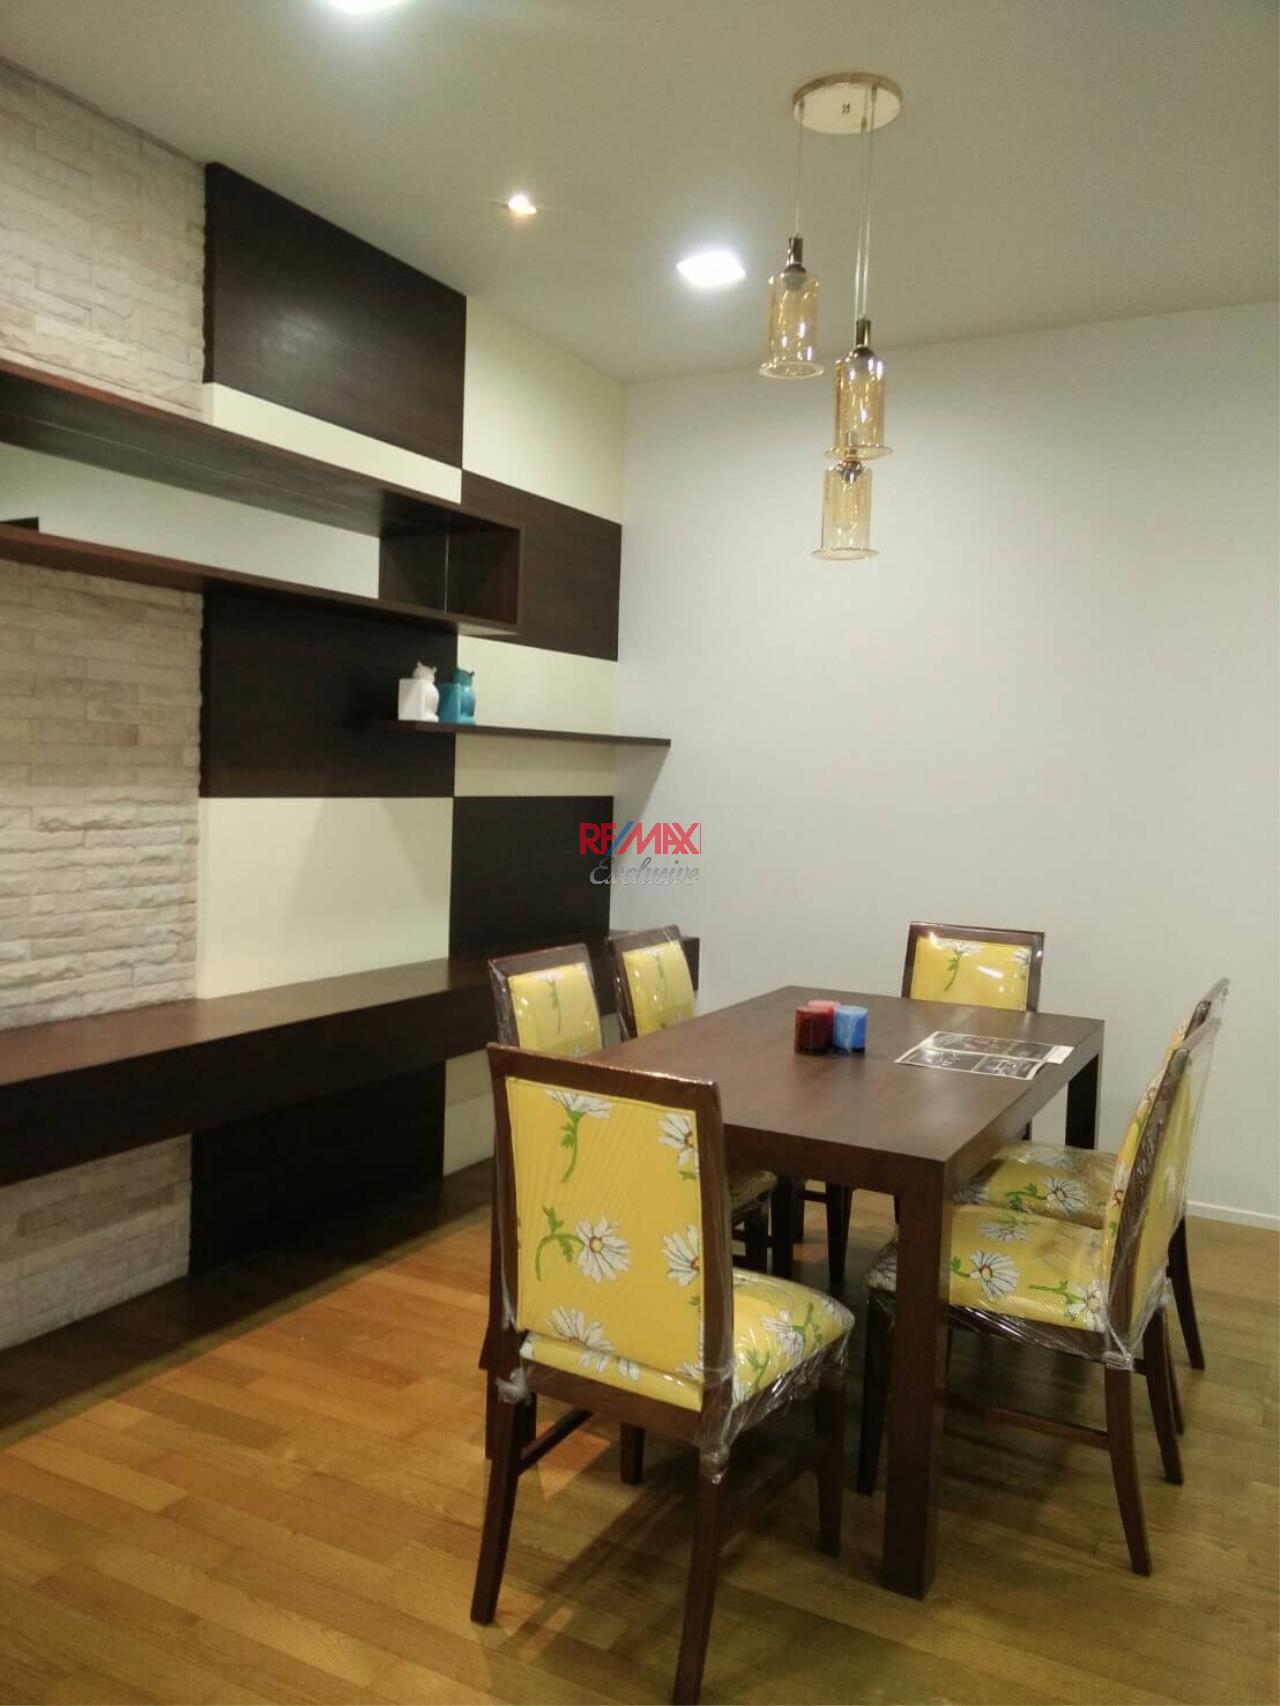 RE/MAX Exclusive Agency's The Madison Condo 2 Bedrooms 139 Sqm., For Sale With Tenant 24,000 000 THB!!  2